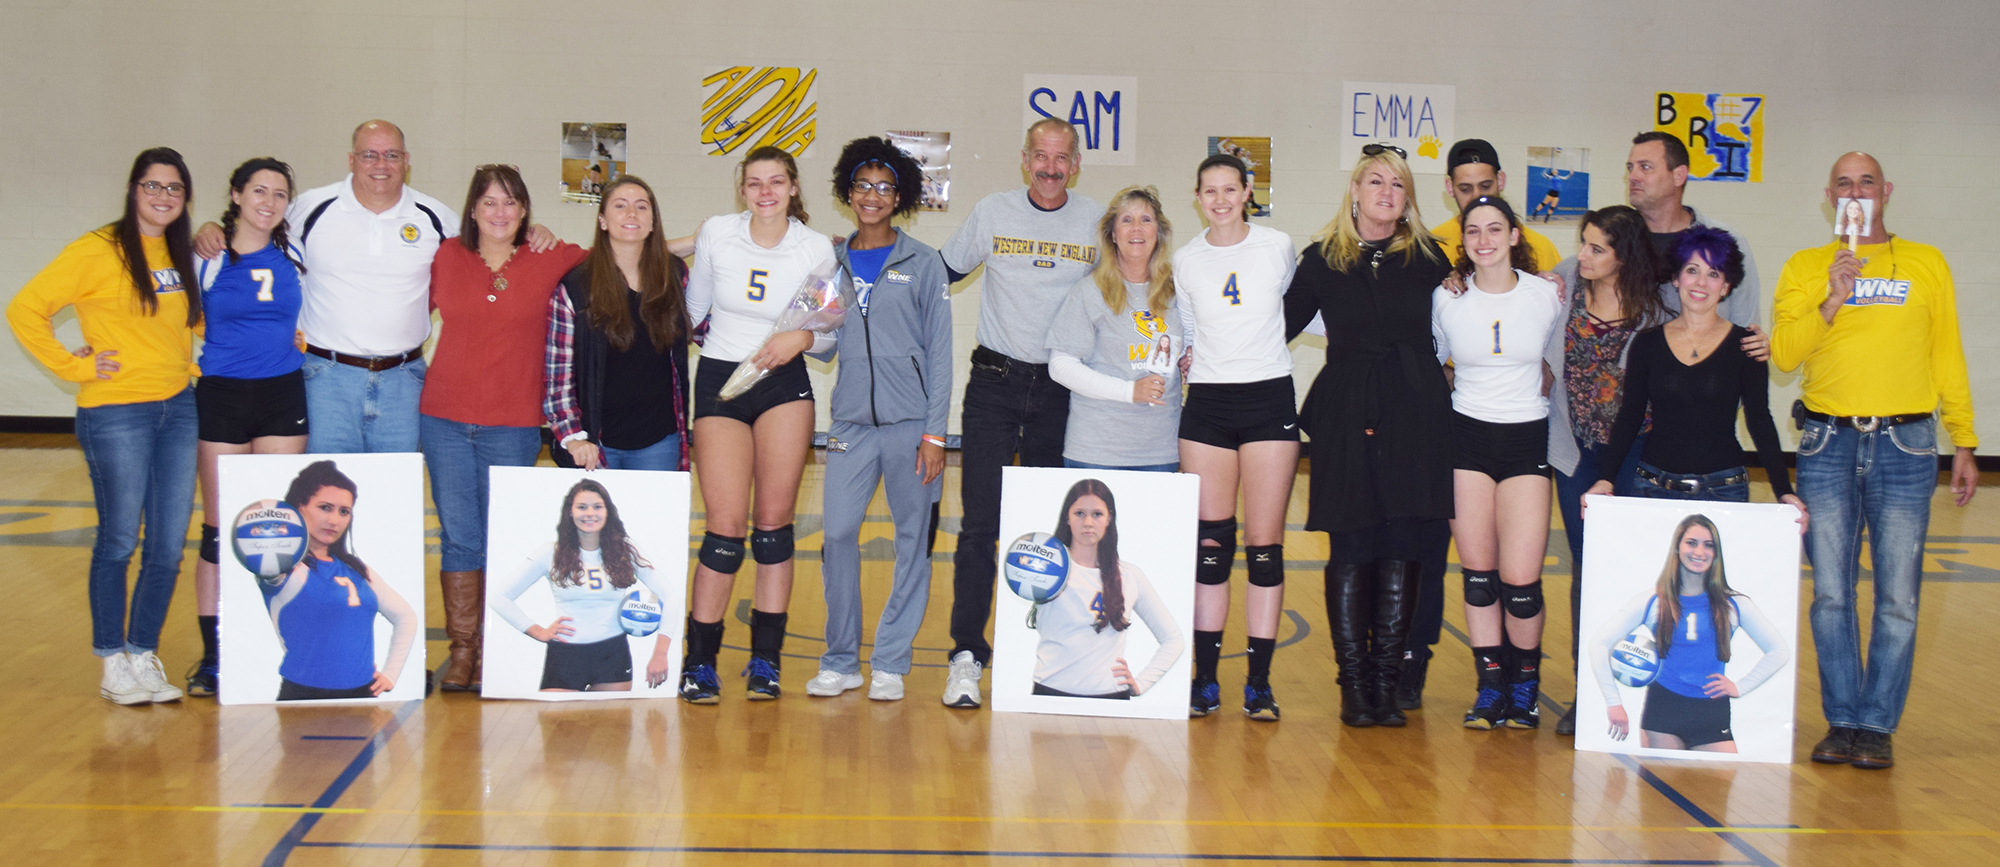 Golden Bears Celebrate Senior Day With 3-0 Wins over Curry & Keene State